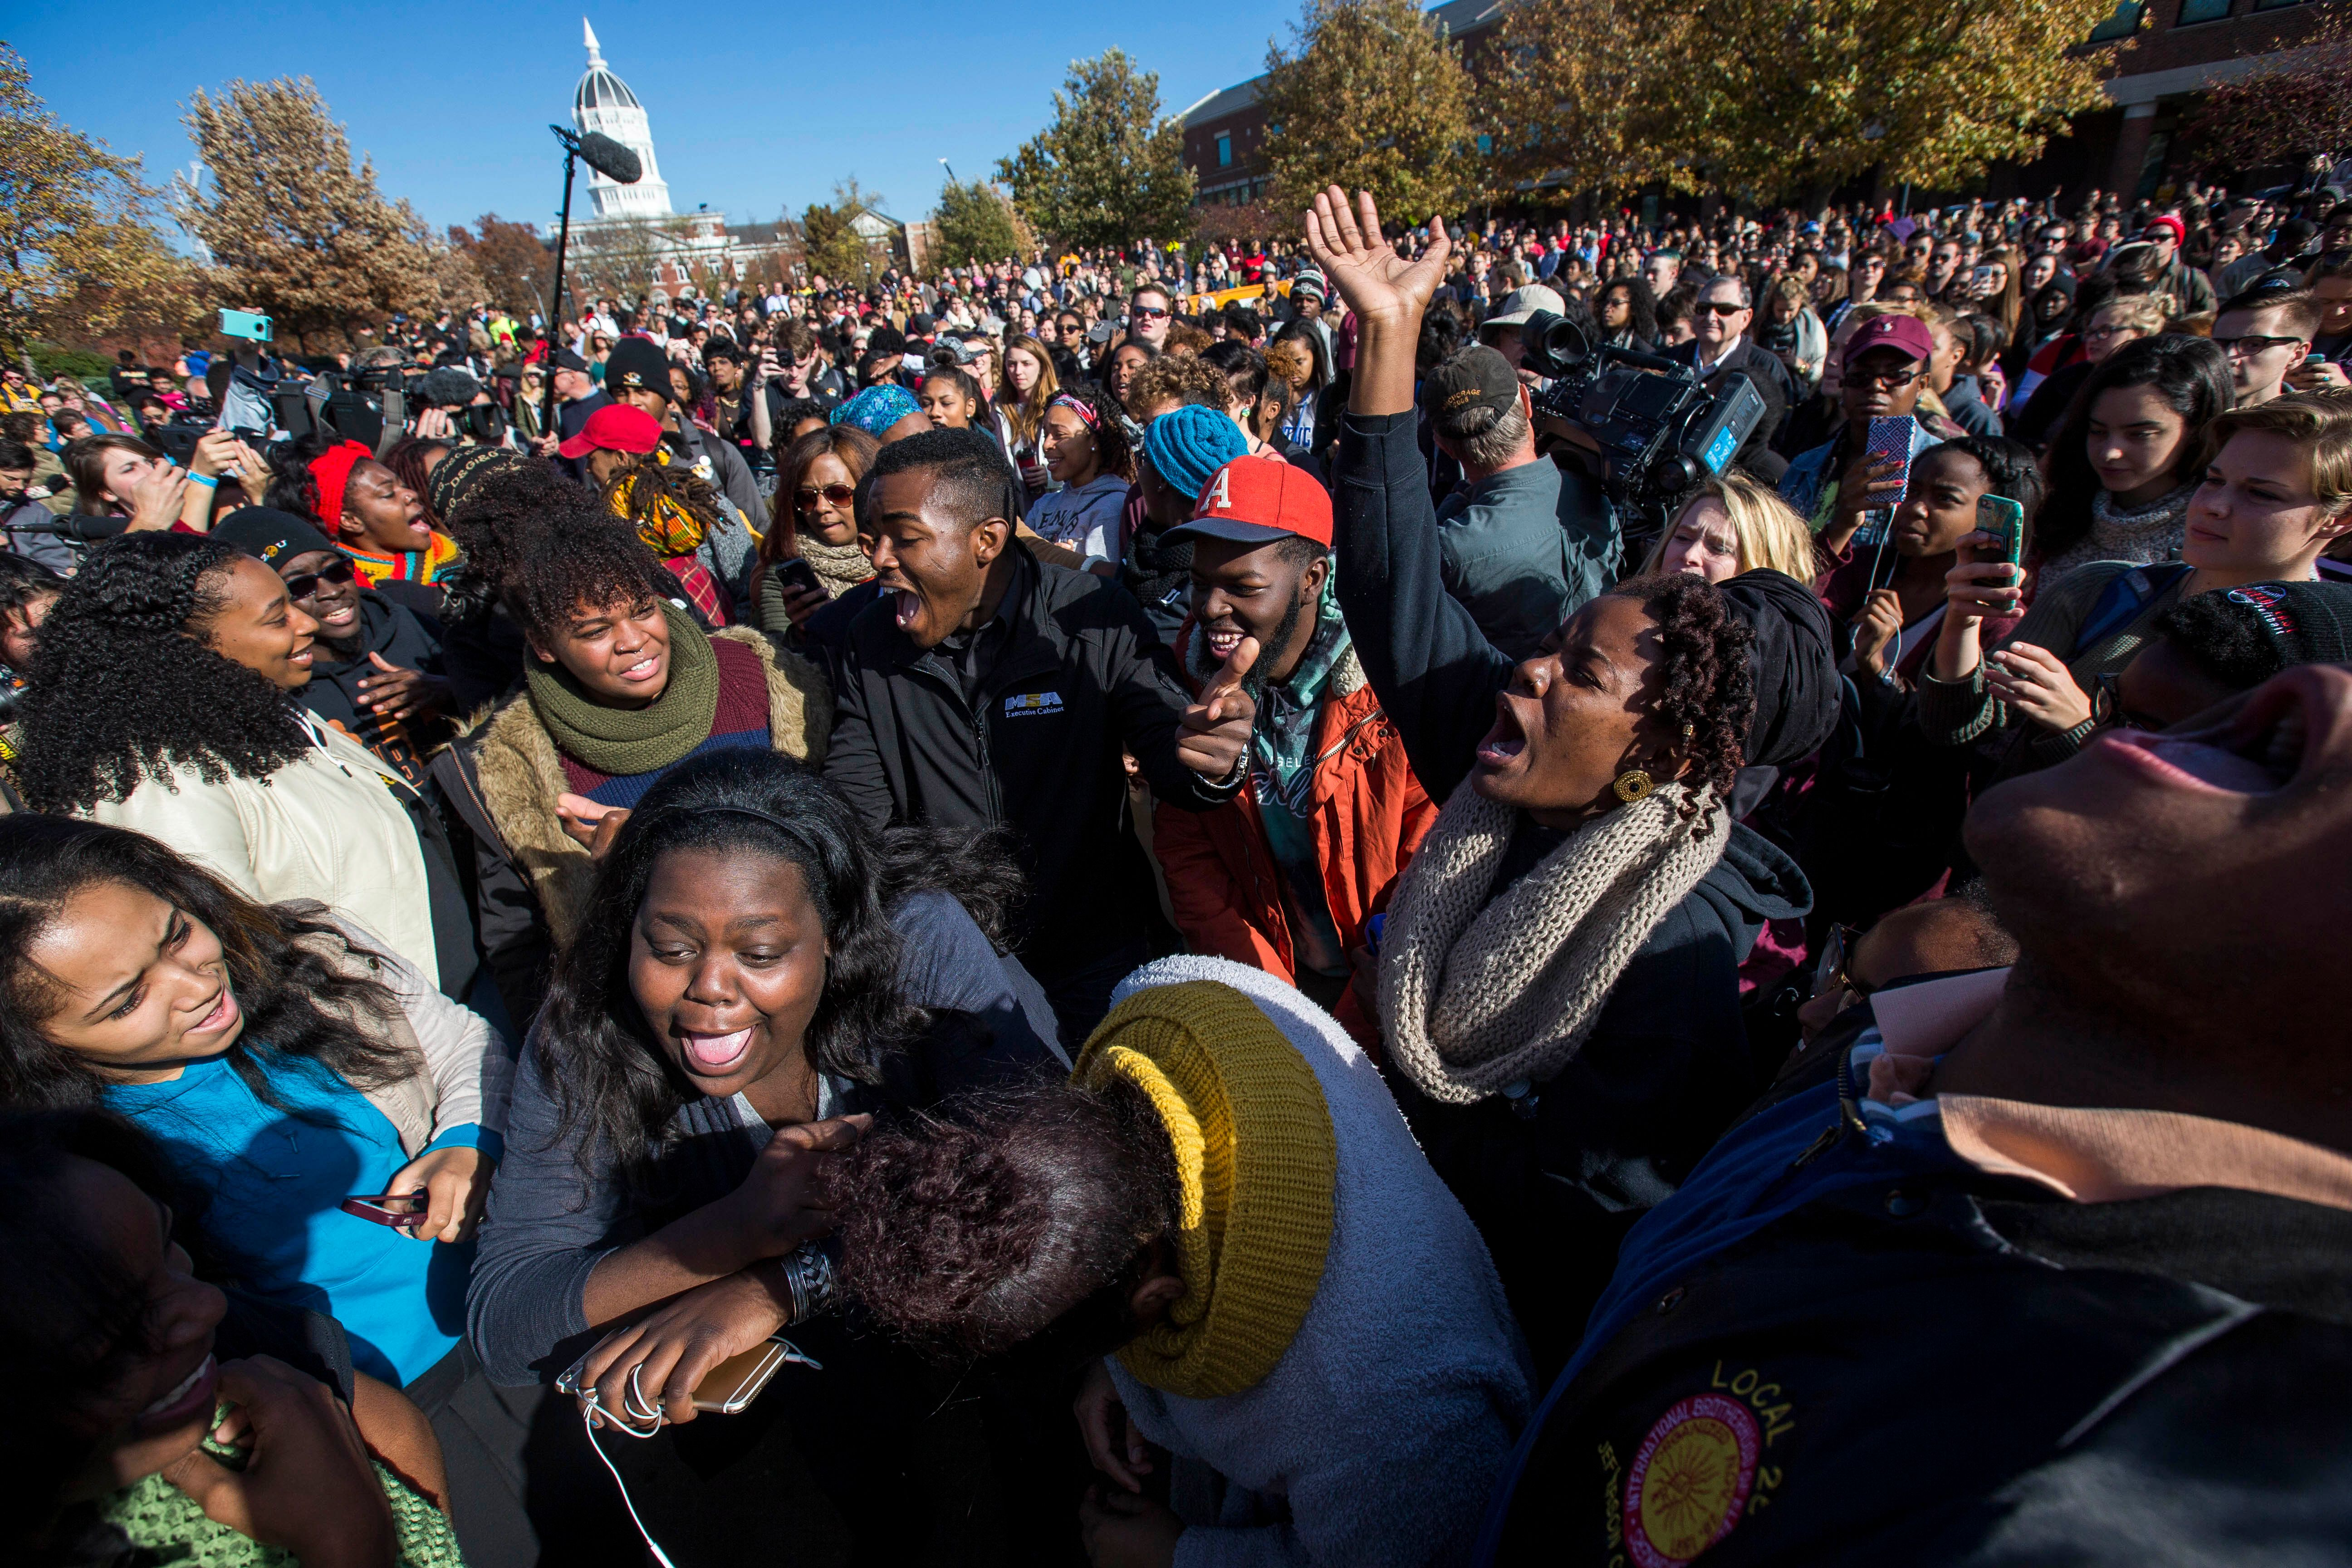 Students celebrate in November after Mizzou's president resigned under pressure over his response toracism on campus.